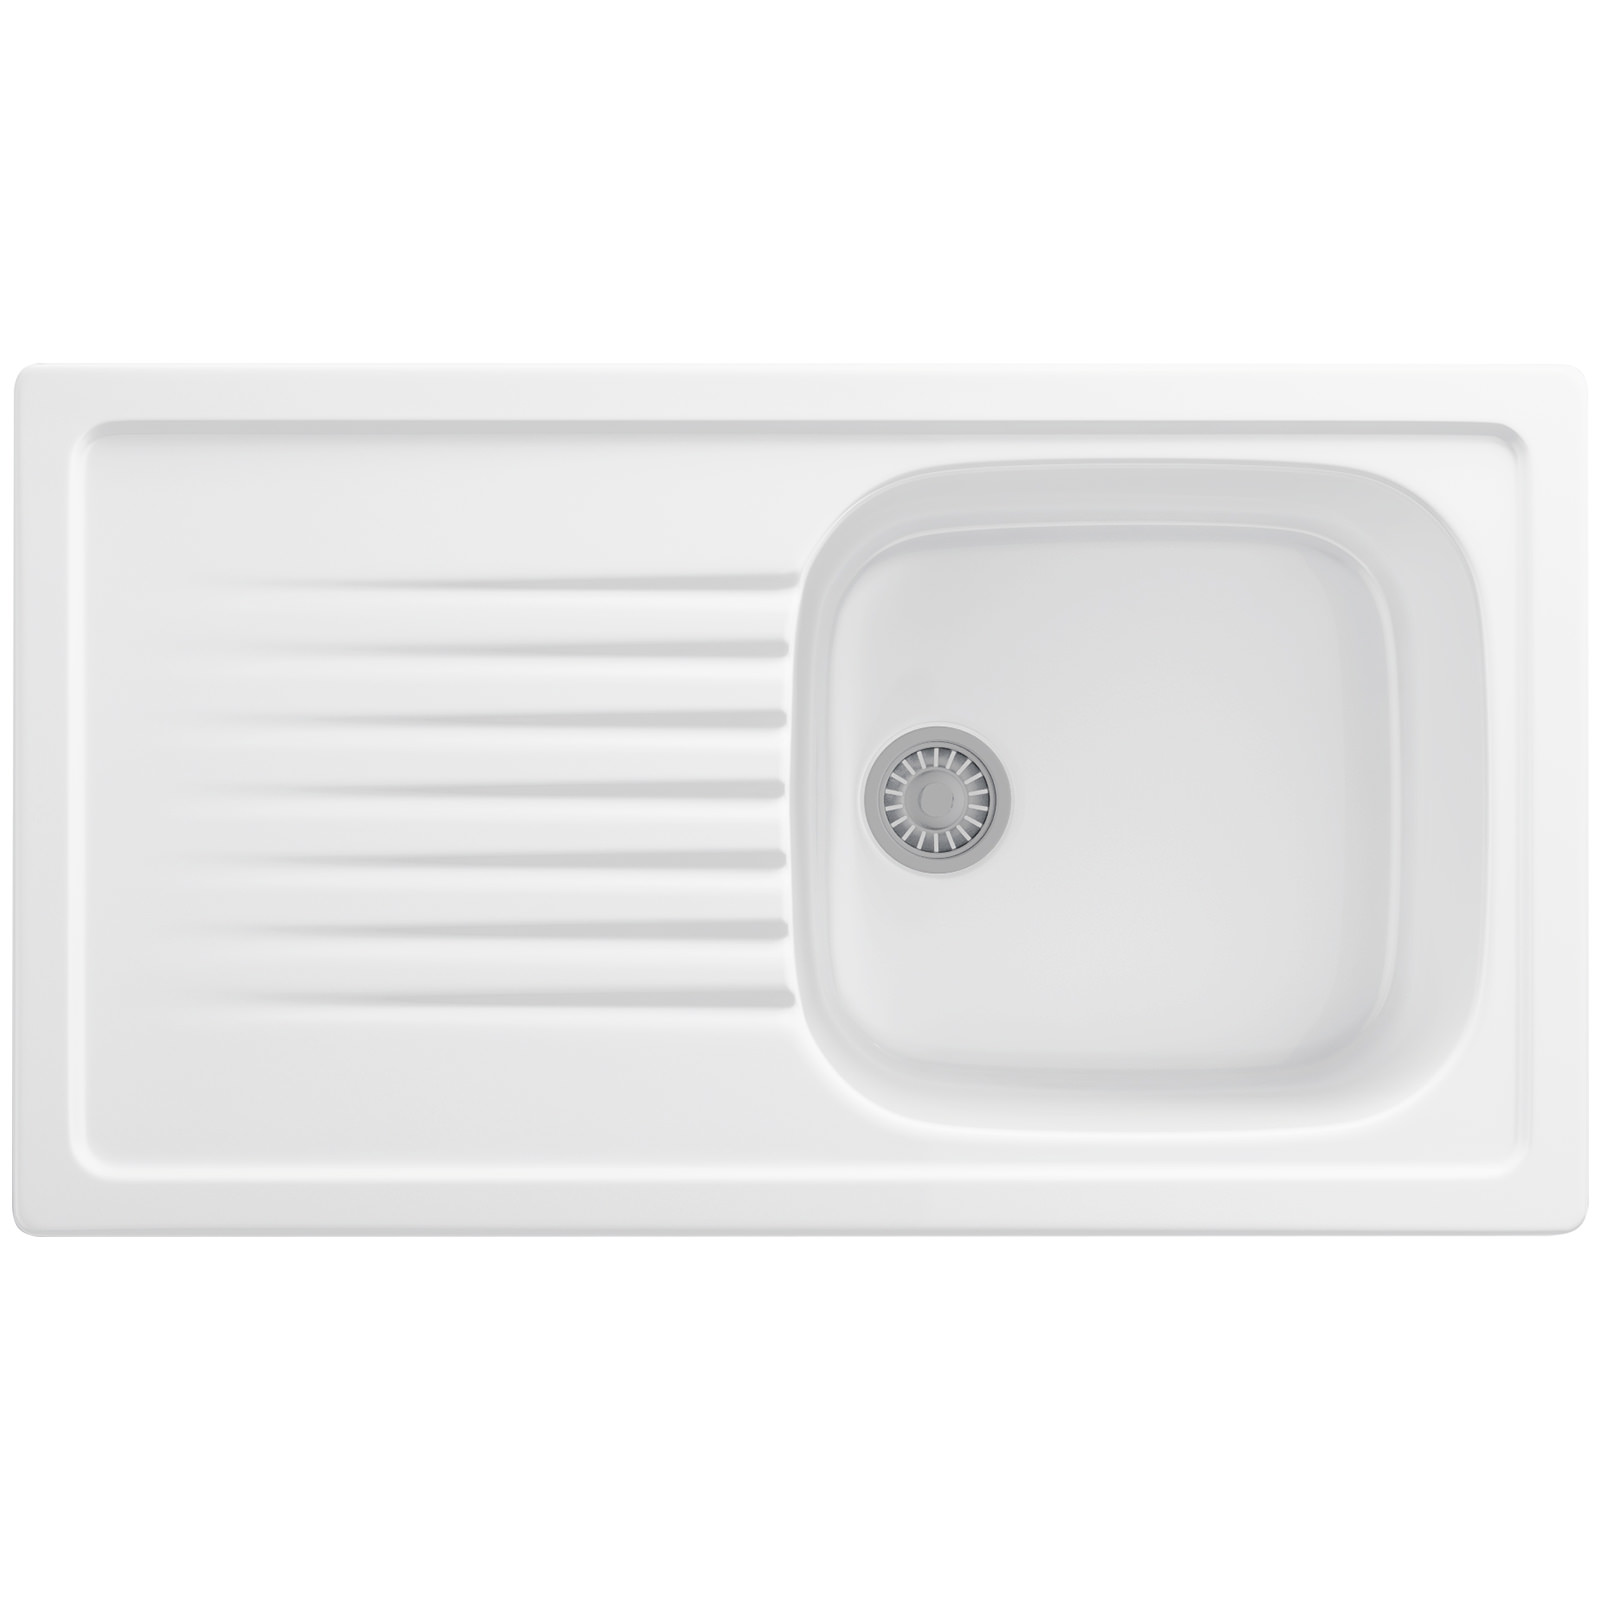 Franke Elba ELK 611 Ceramic White 1.0 Bowl Kitchen Inset Sink ...